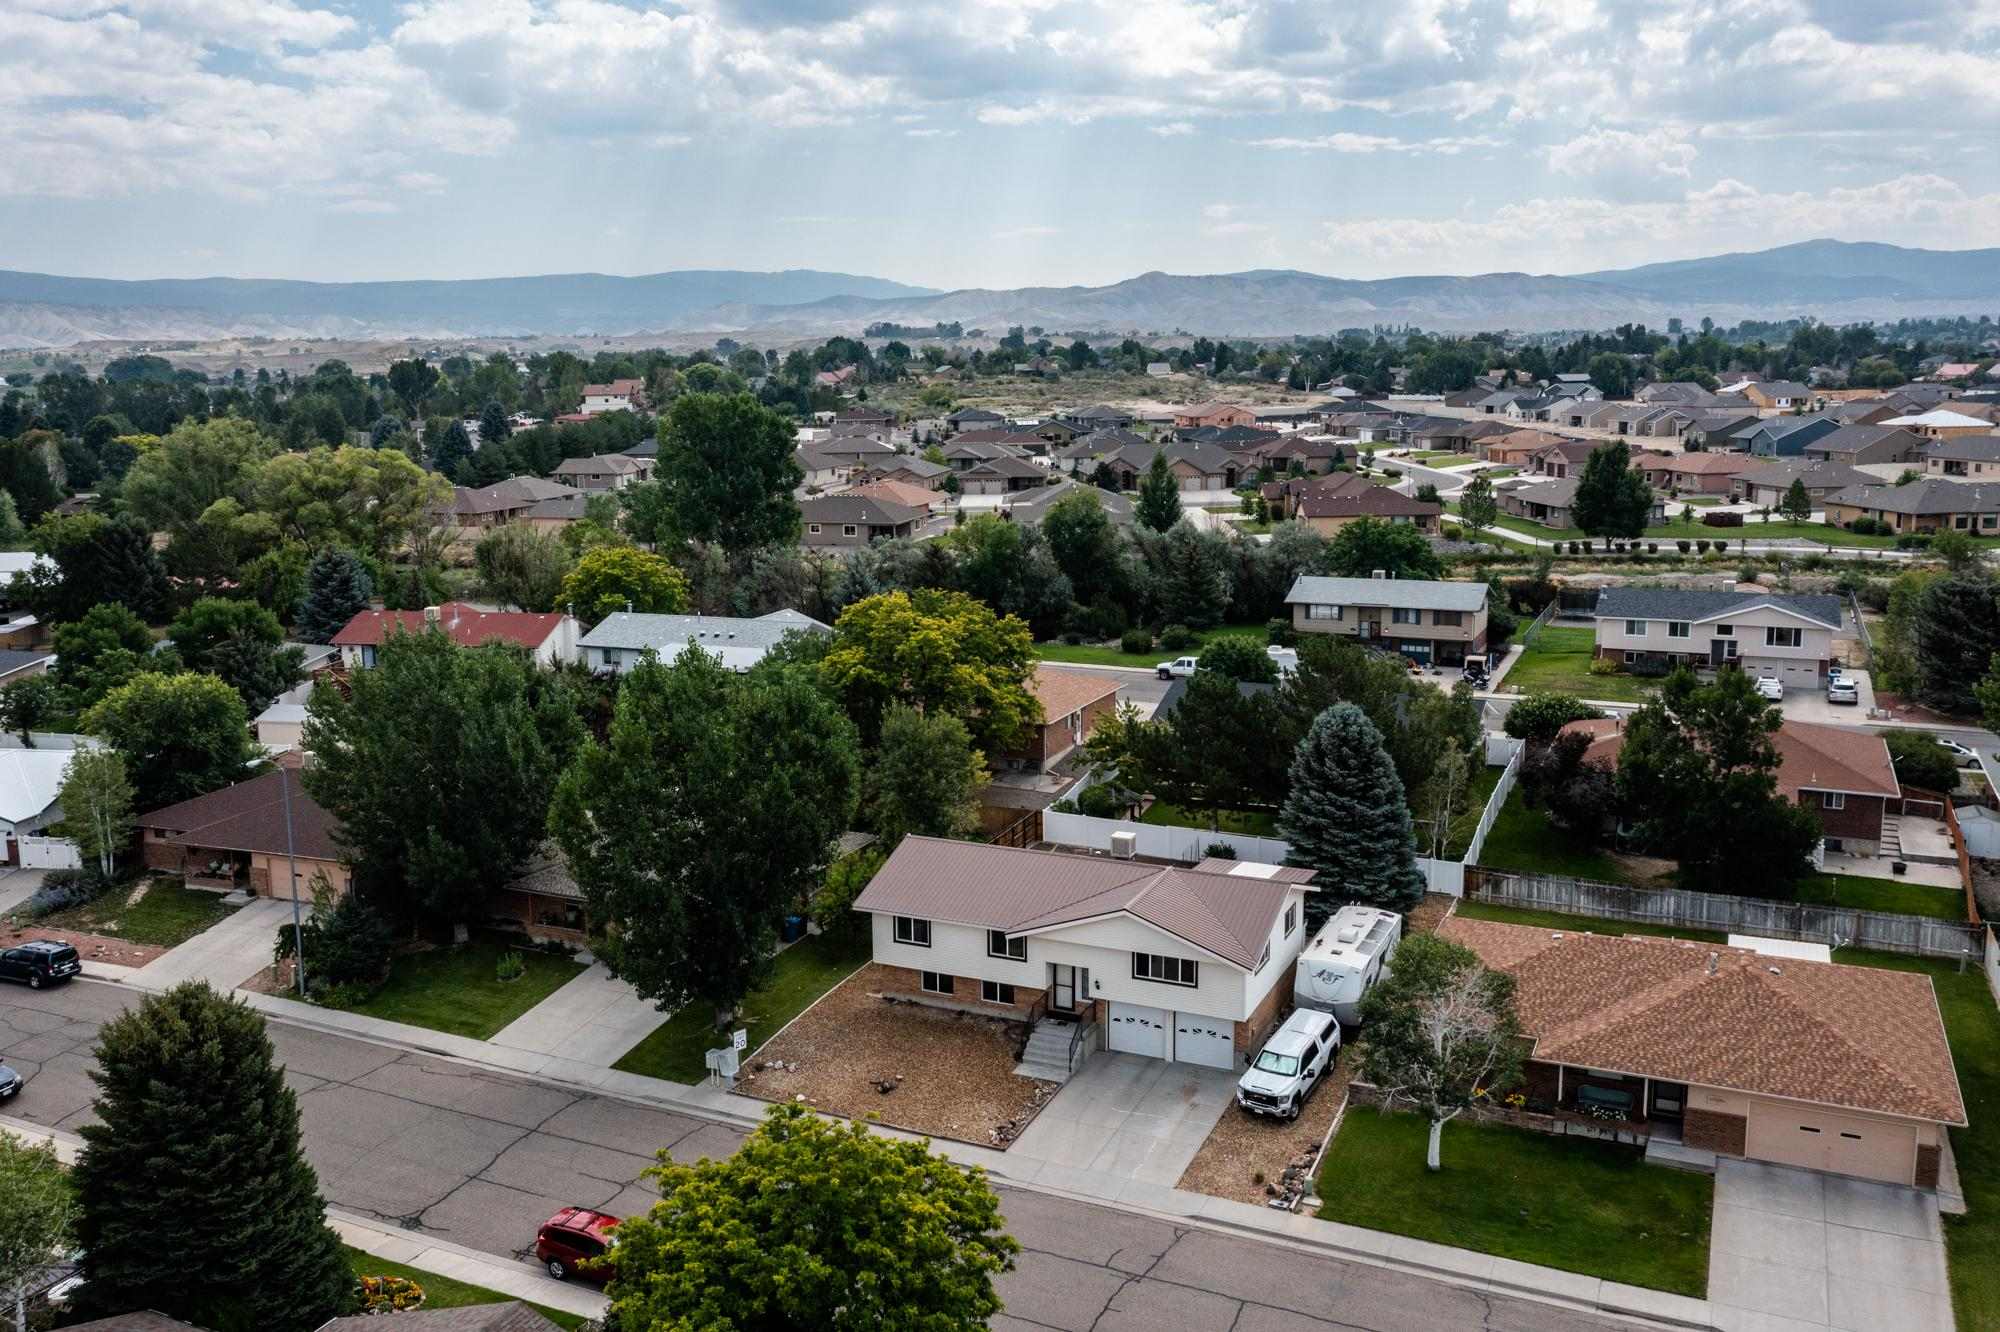 Aerial Neighborhood View - 1311 Manchester Dr Montrose, CO 81401 - Atha Team Realty Agents